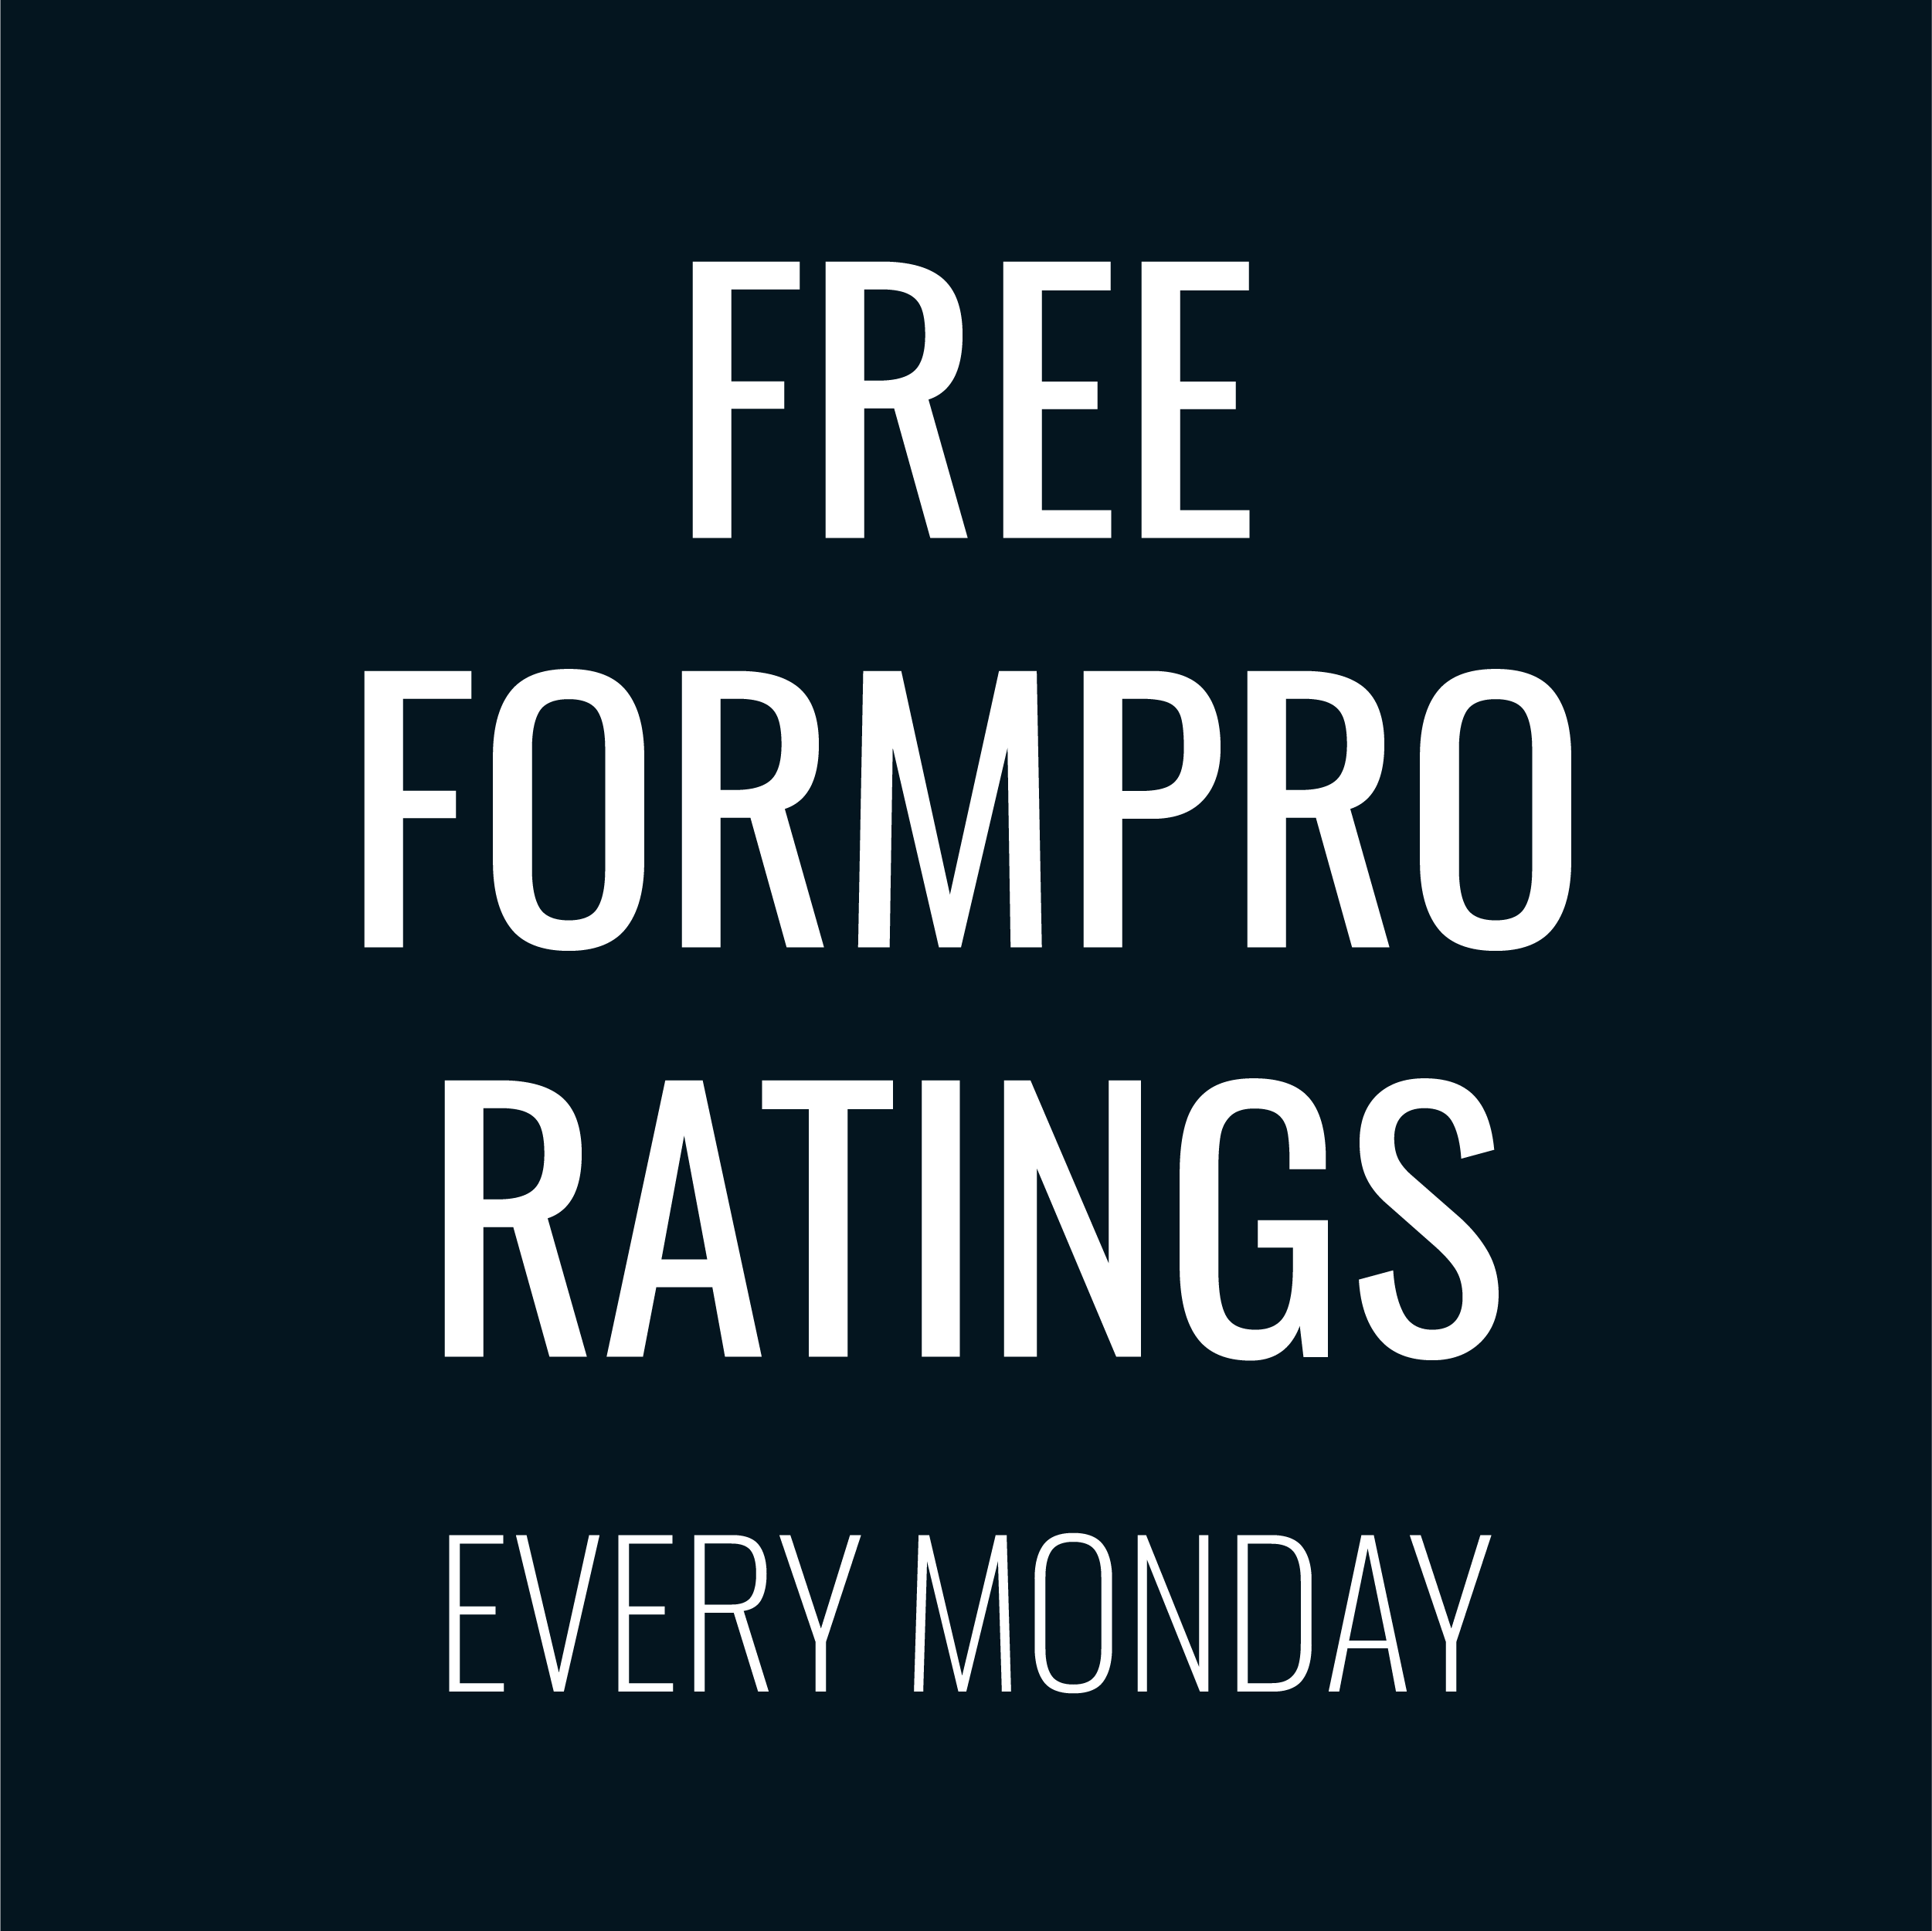 Free Greyhound Ratings Monday 18 March